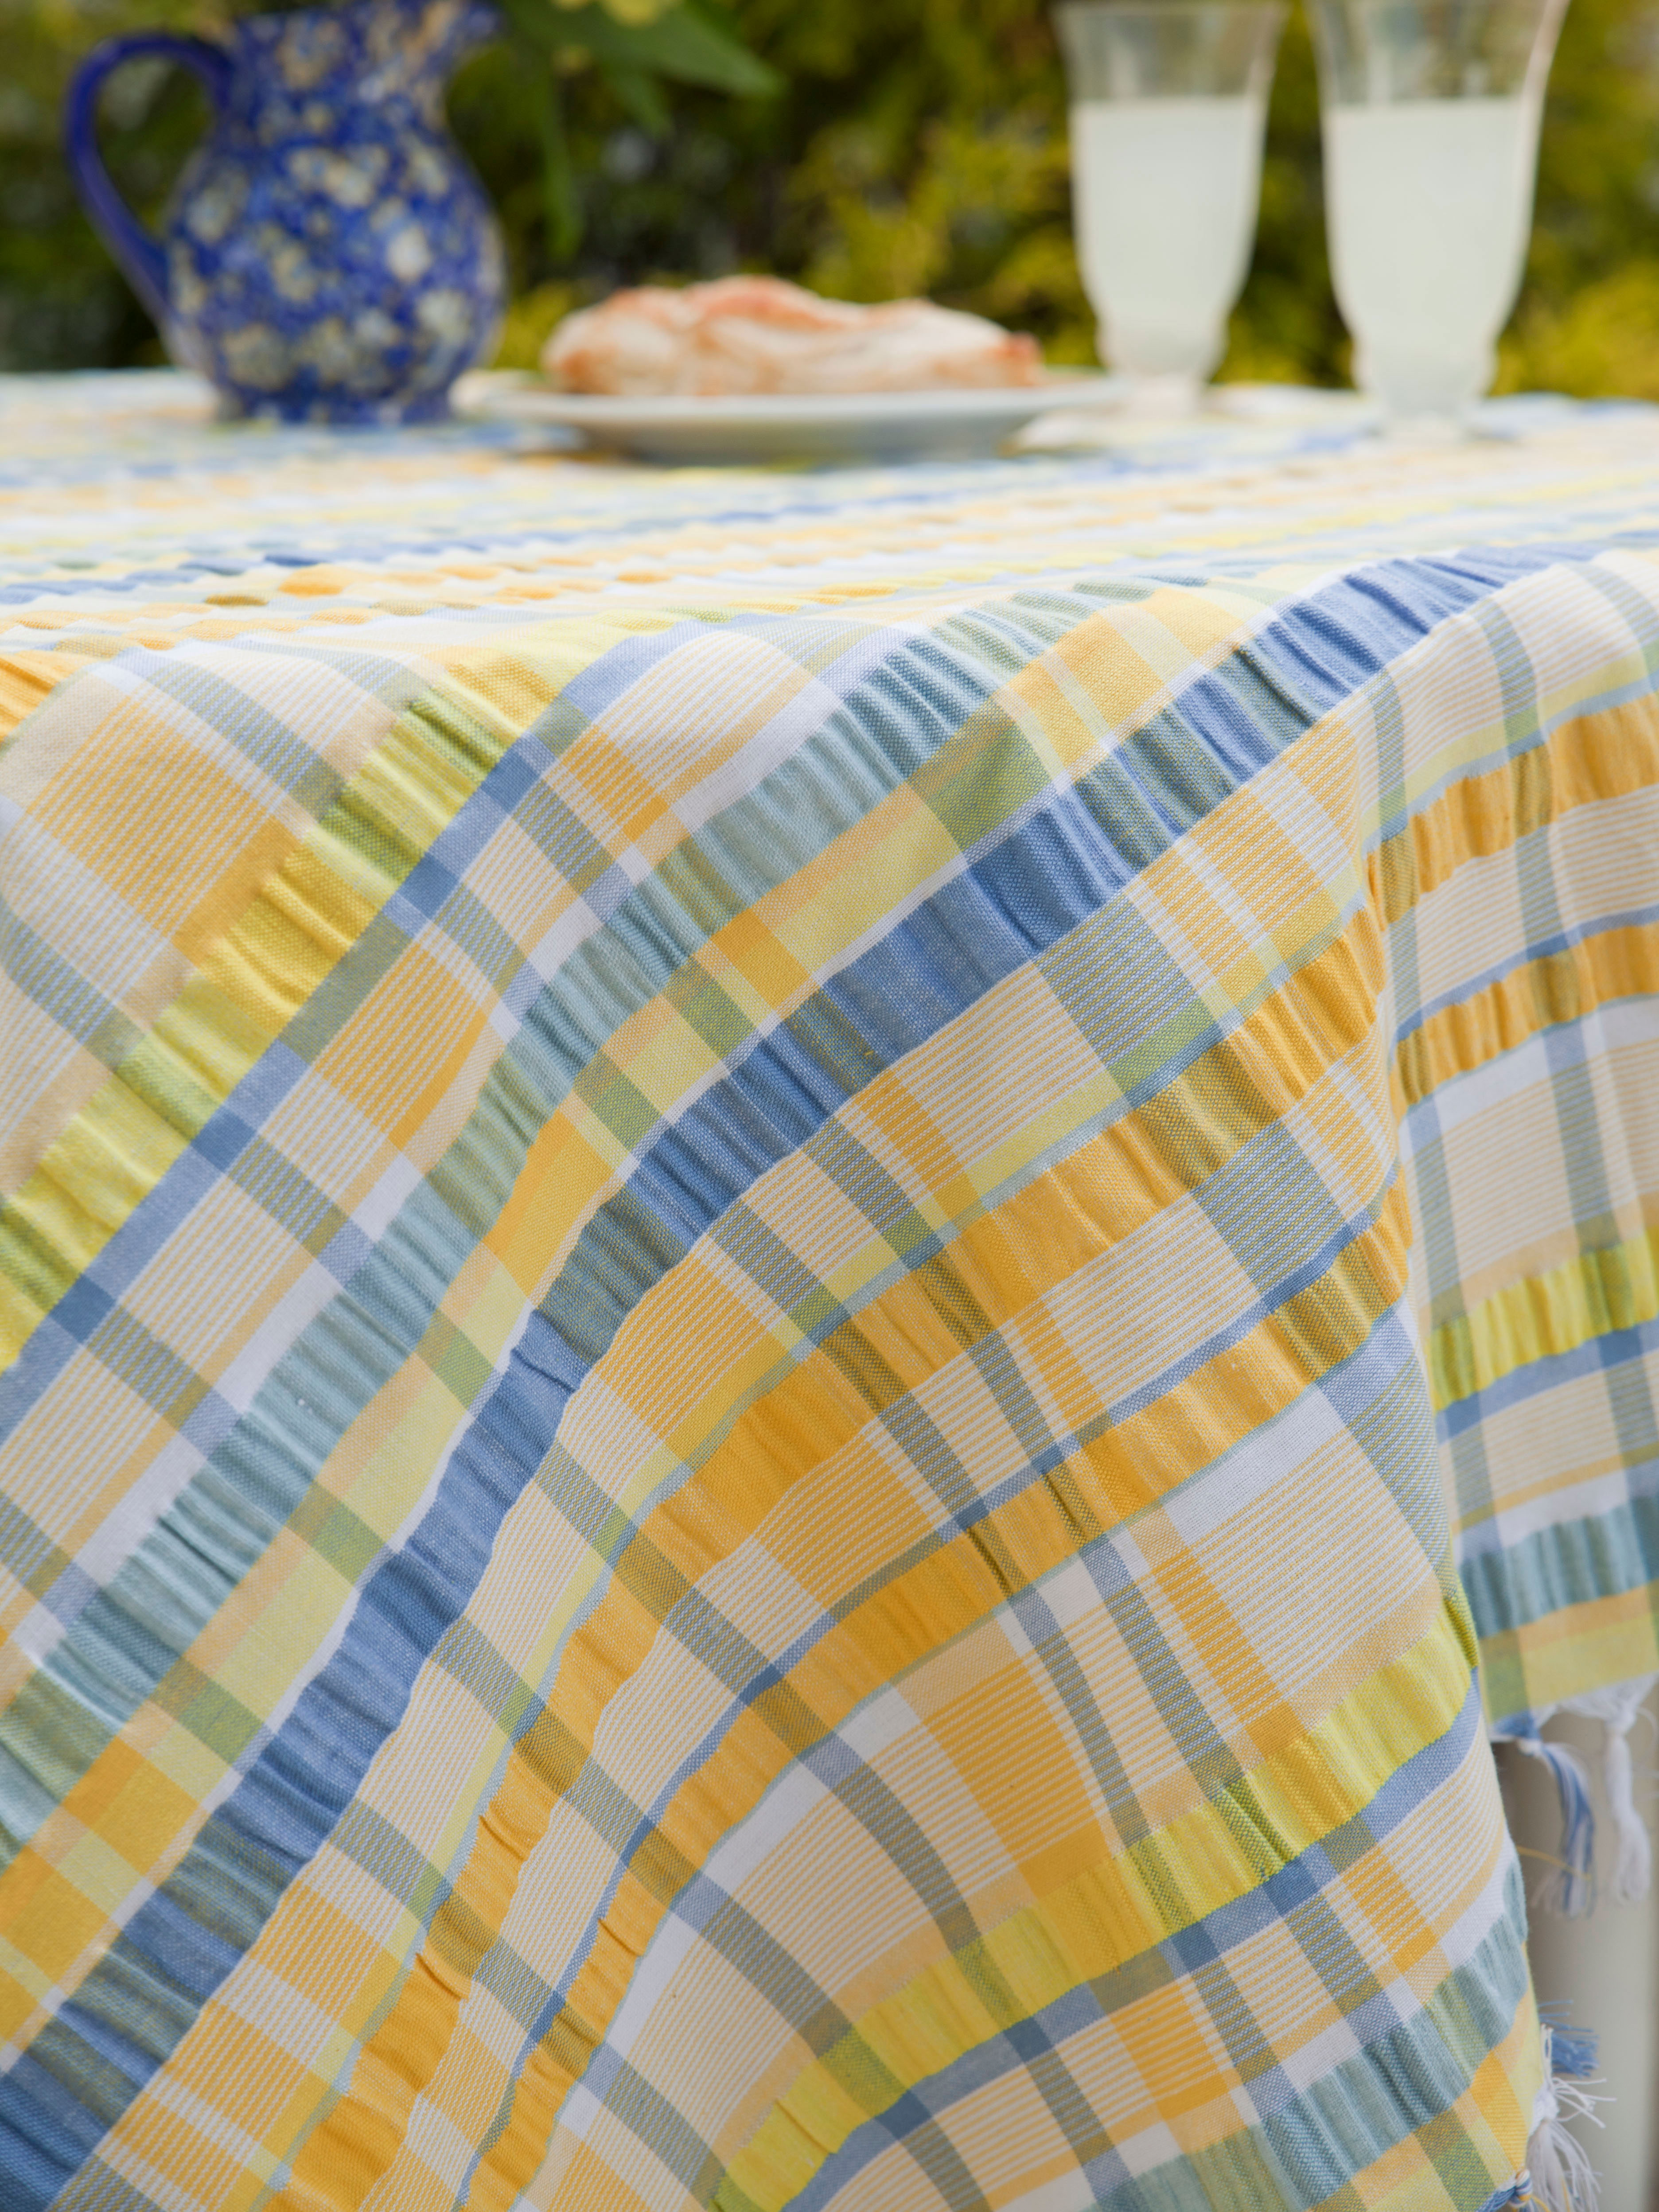 Provence Seersucker Tablecloth